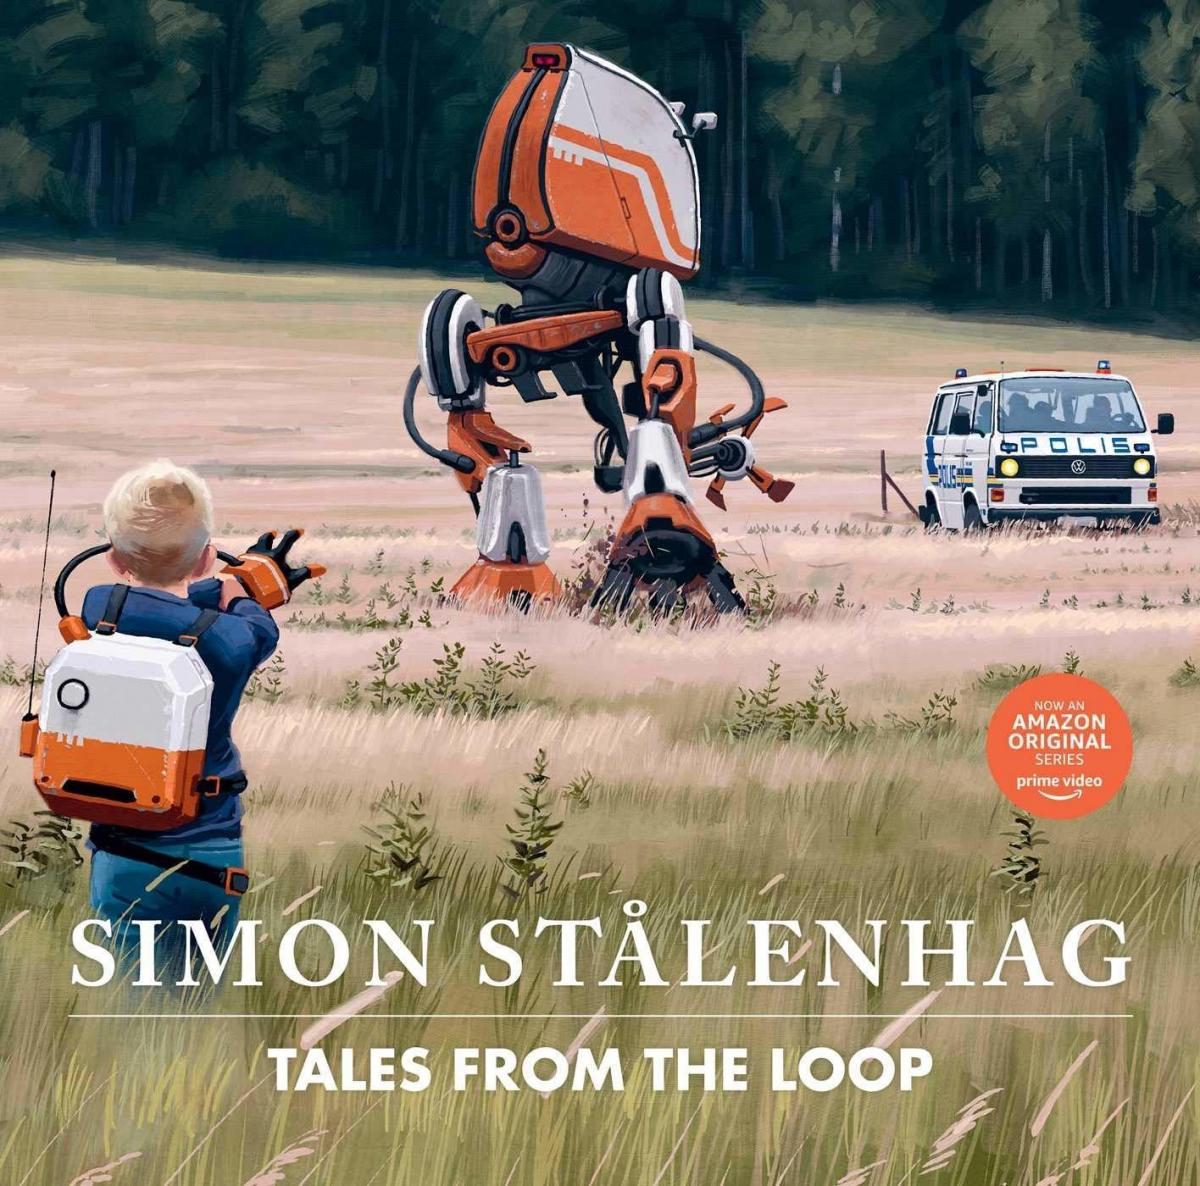 Tales from the Loop, by Simon Stålenhag